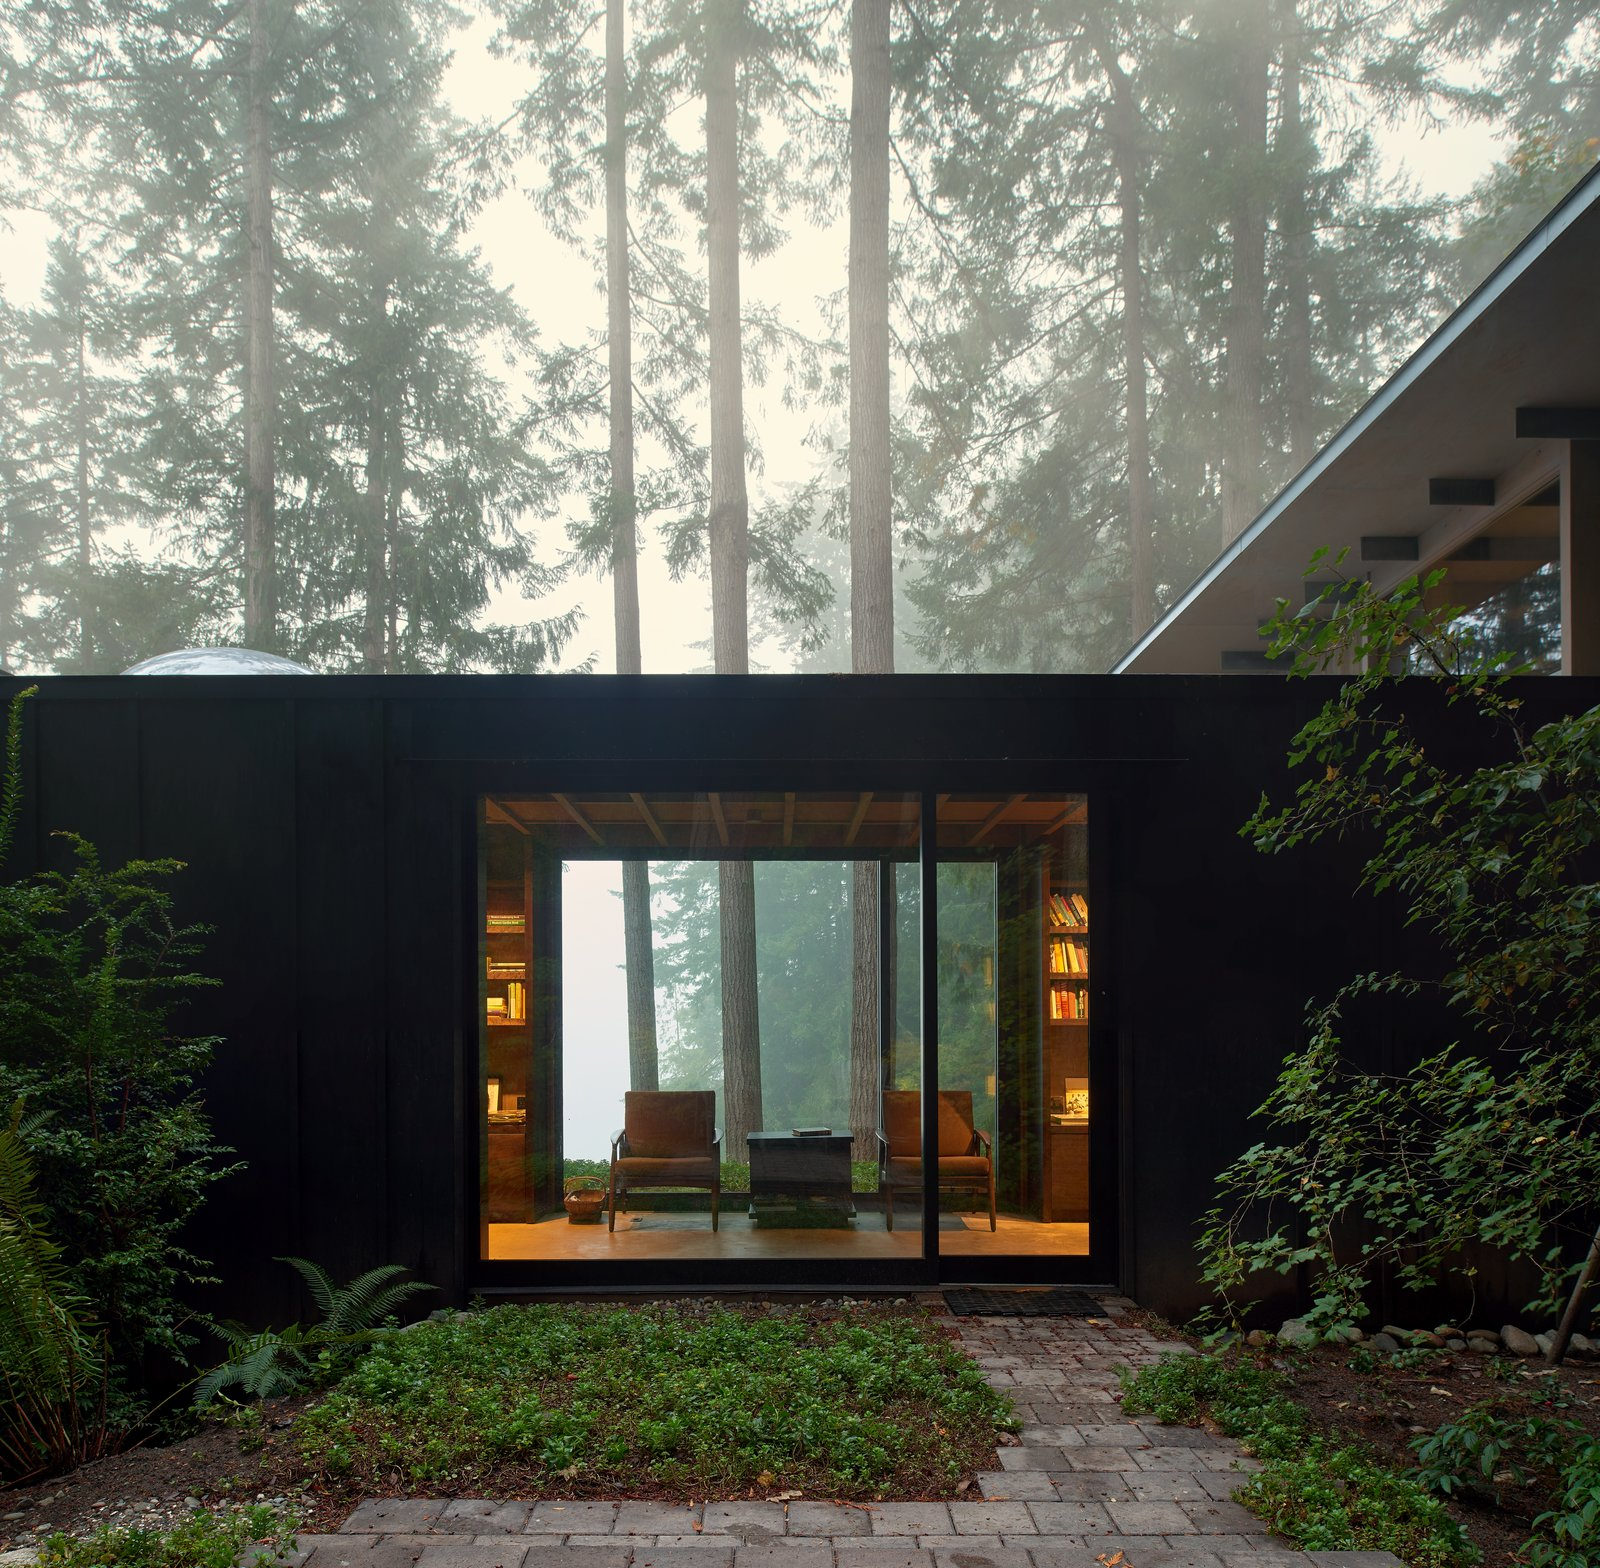 A Mesmerizing Cabin in Puget Sound Evolves Over Several Decades